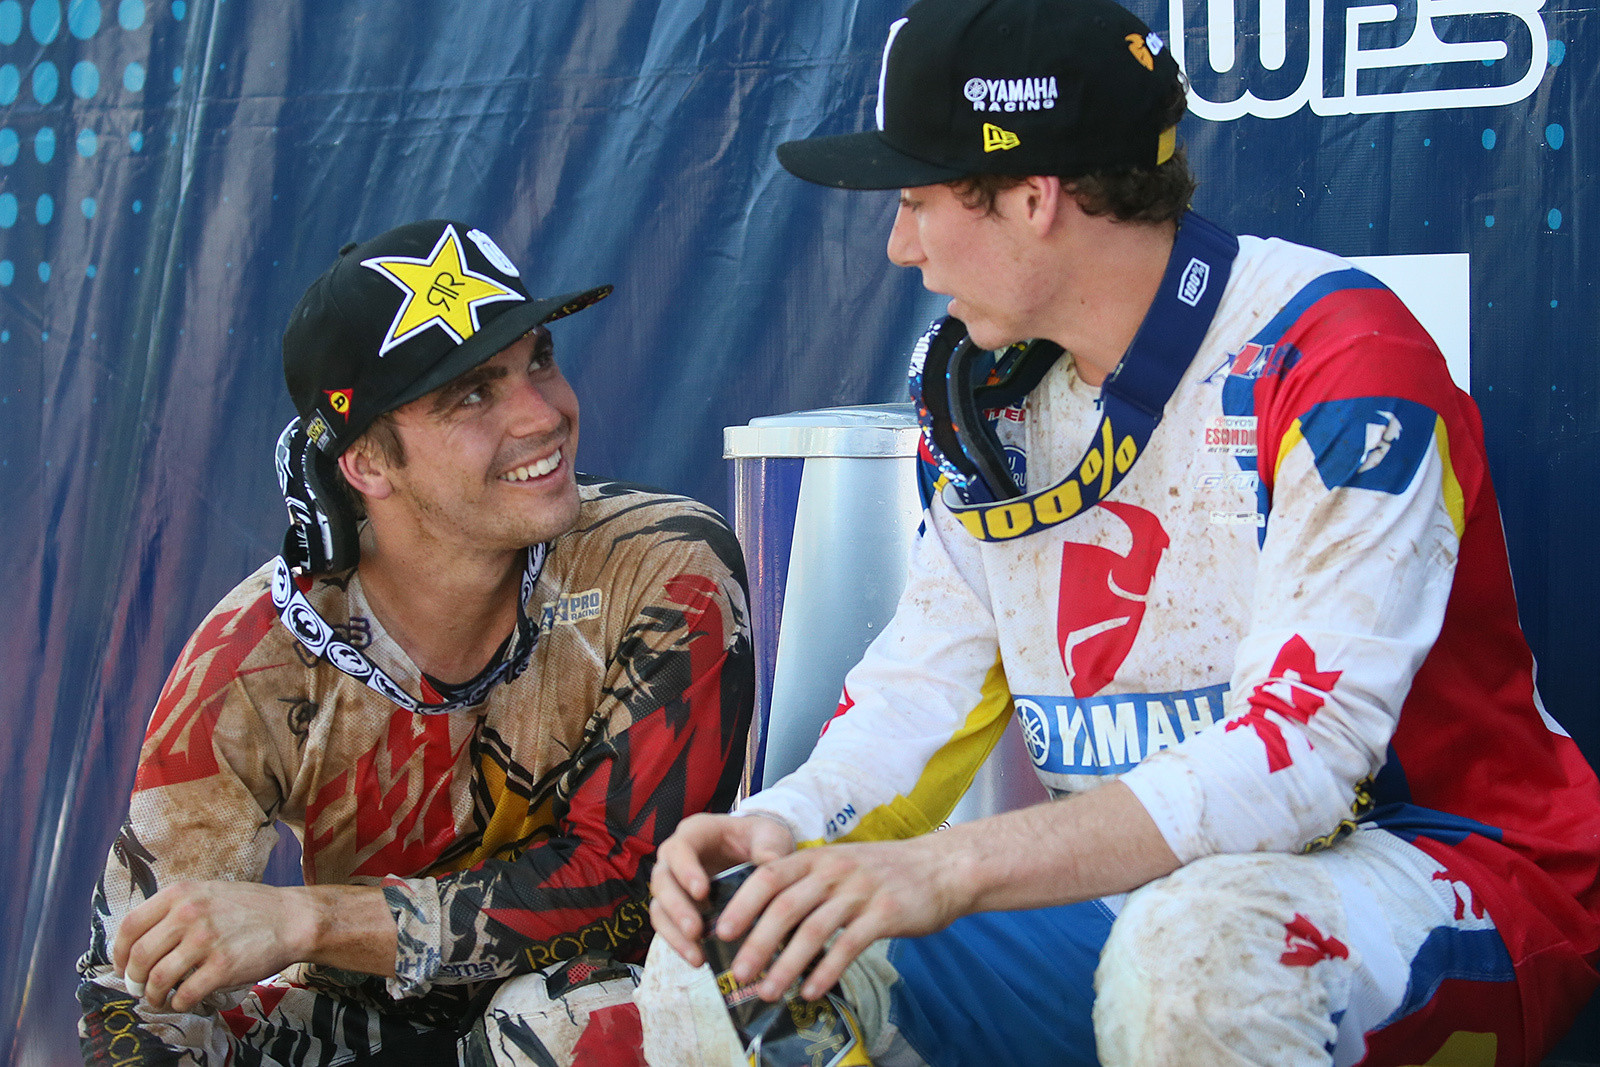 Mitchell was pumped to get up on the podium for his second moto finish, and was nearly on there to score a trophy. Jeremy Martin's win in the first moto gave him the extra points needed to keep him up there.